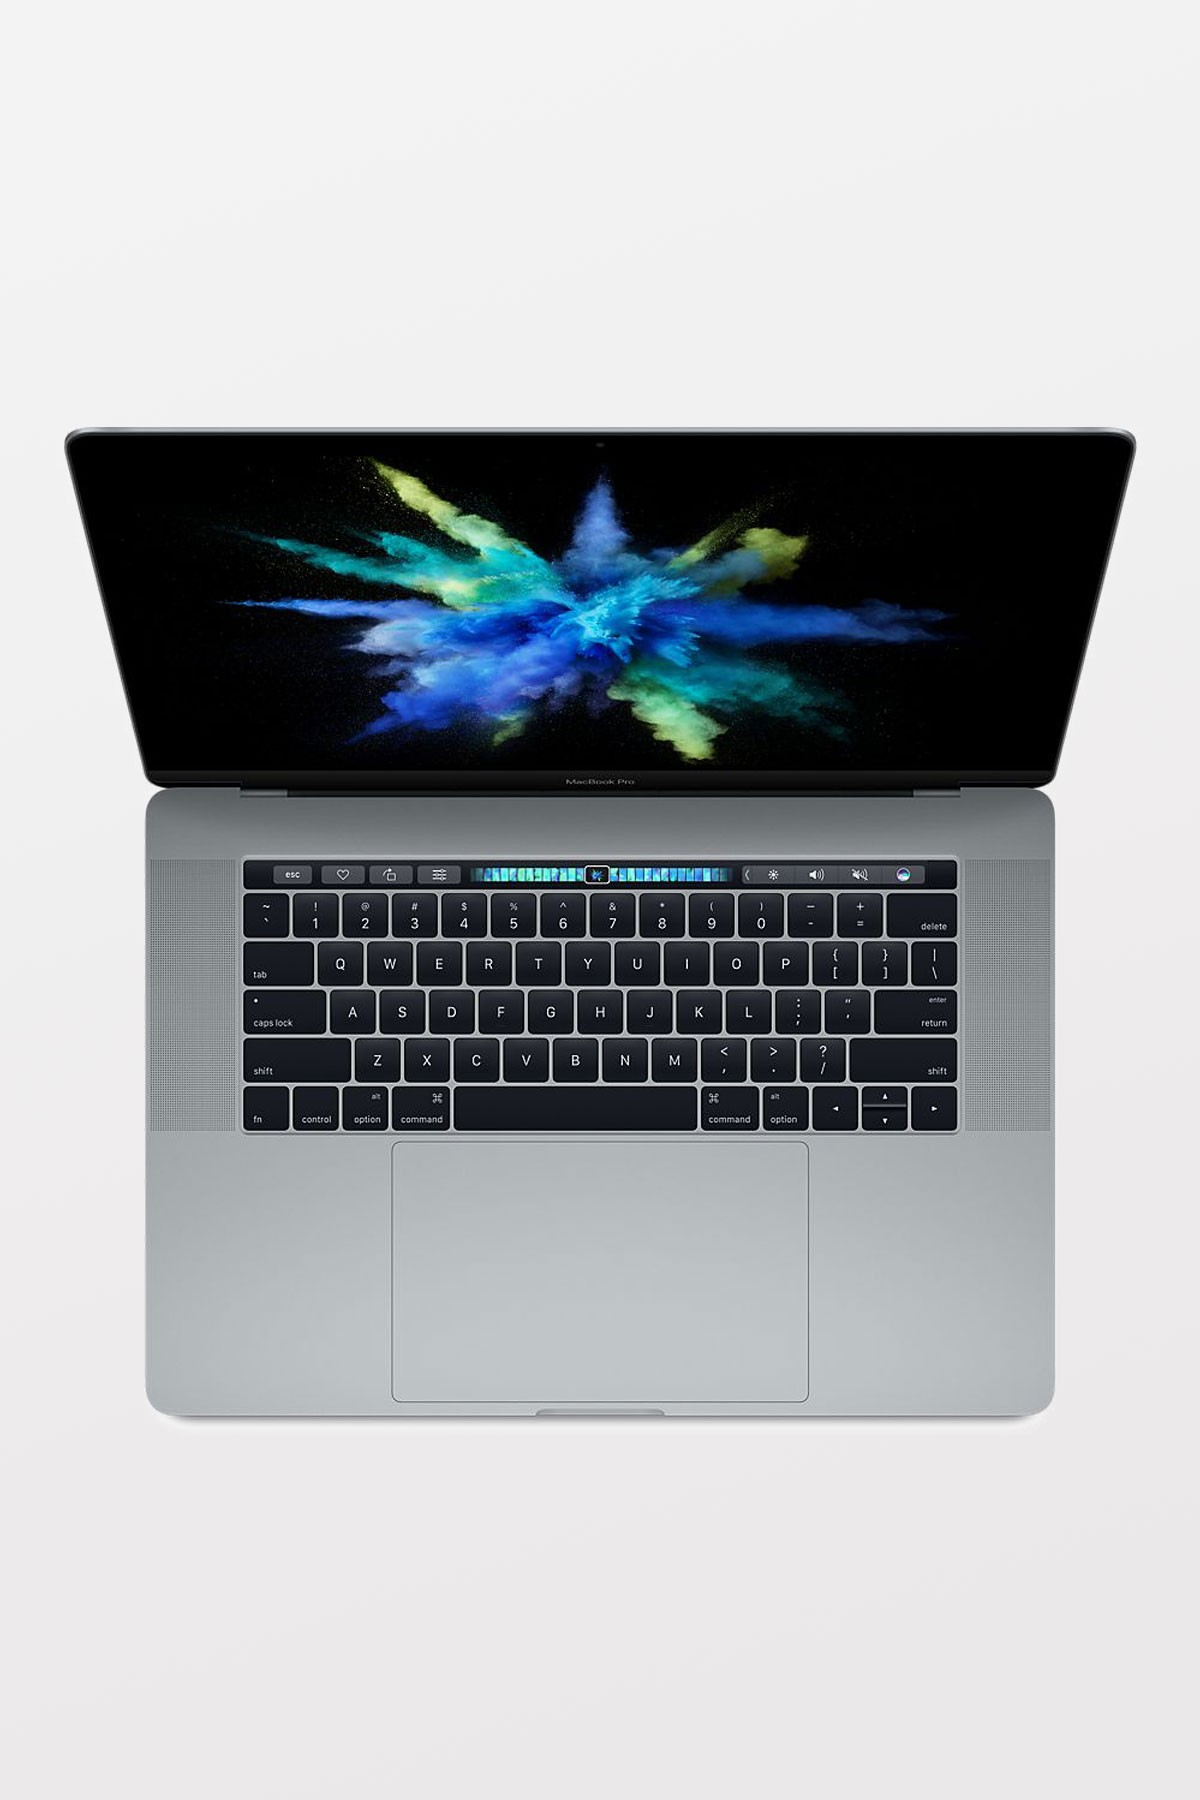 Apple MacBook Pro with Touch Bar 15-inch (2.9GHz i7/16GB/512GB Flash/Radeon Pro 560 4GB) - Space Grey - Refurbished